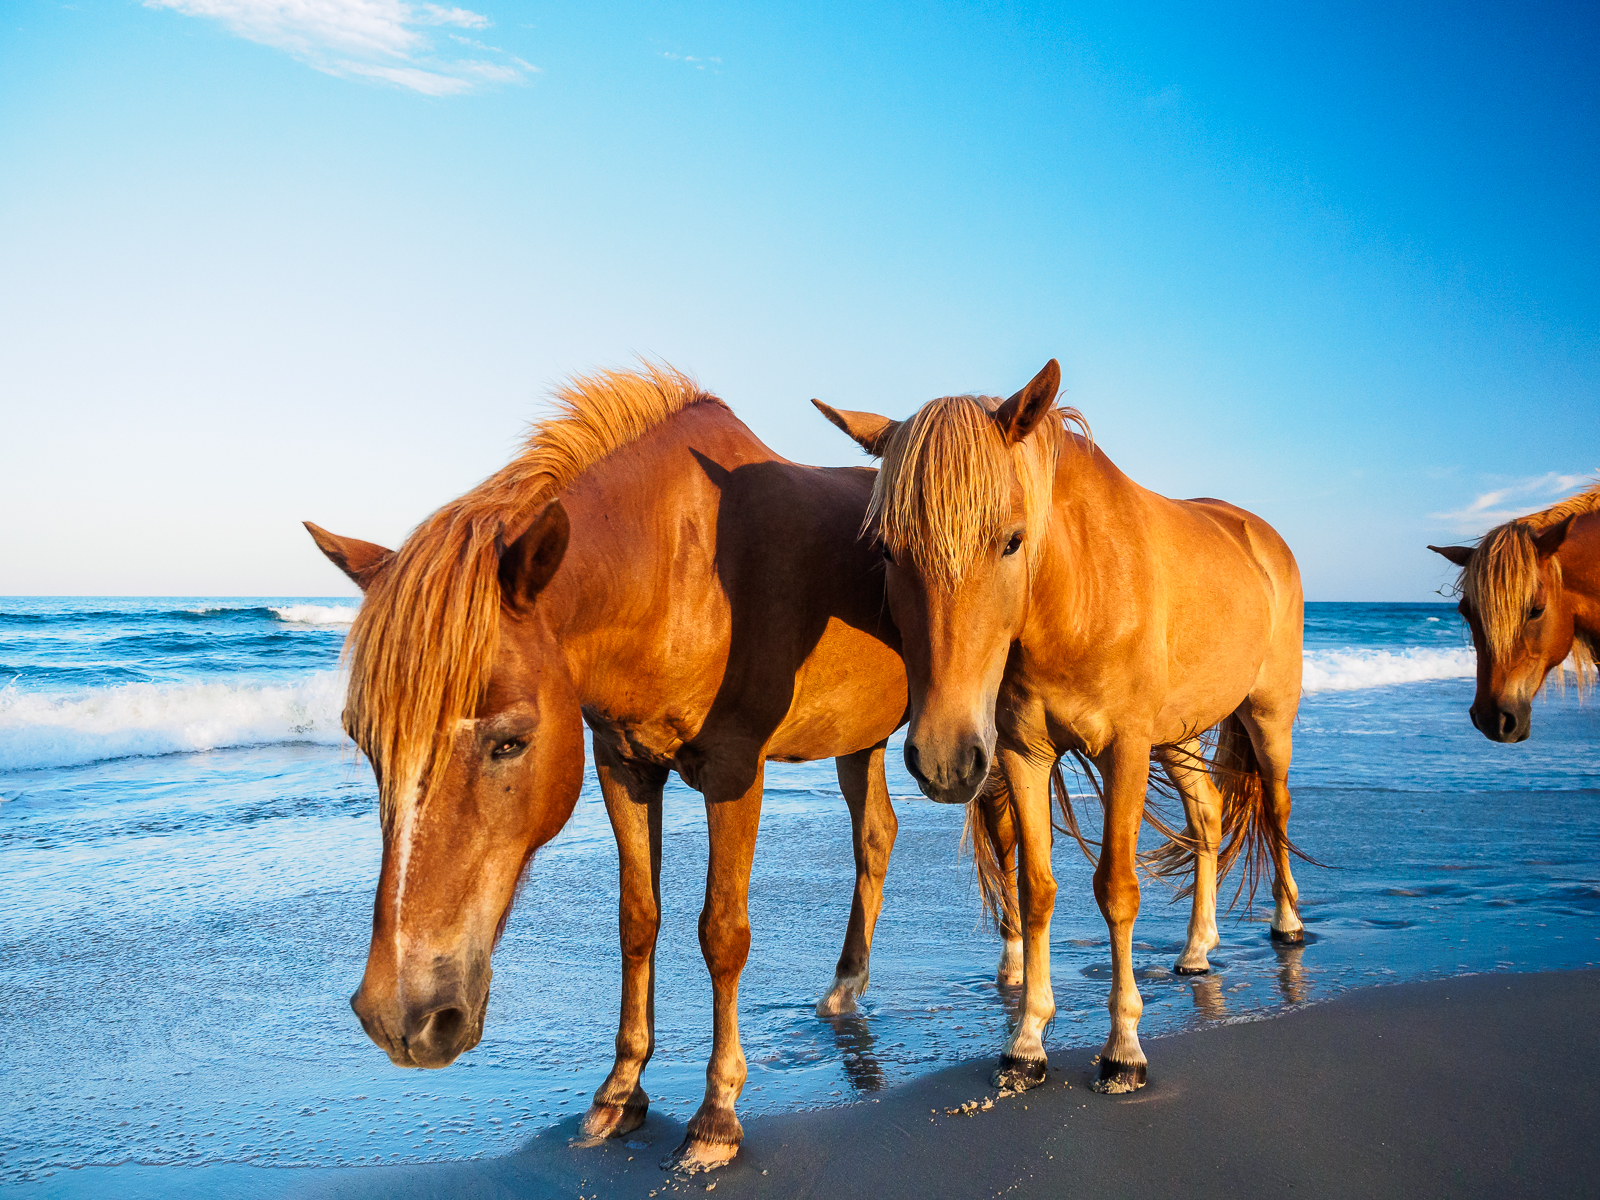 horses-assateague-6326